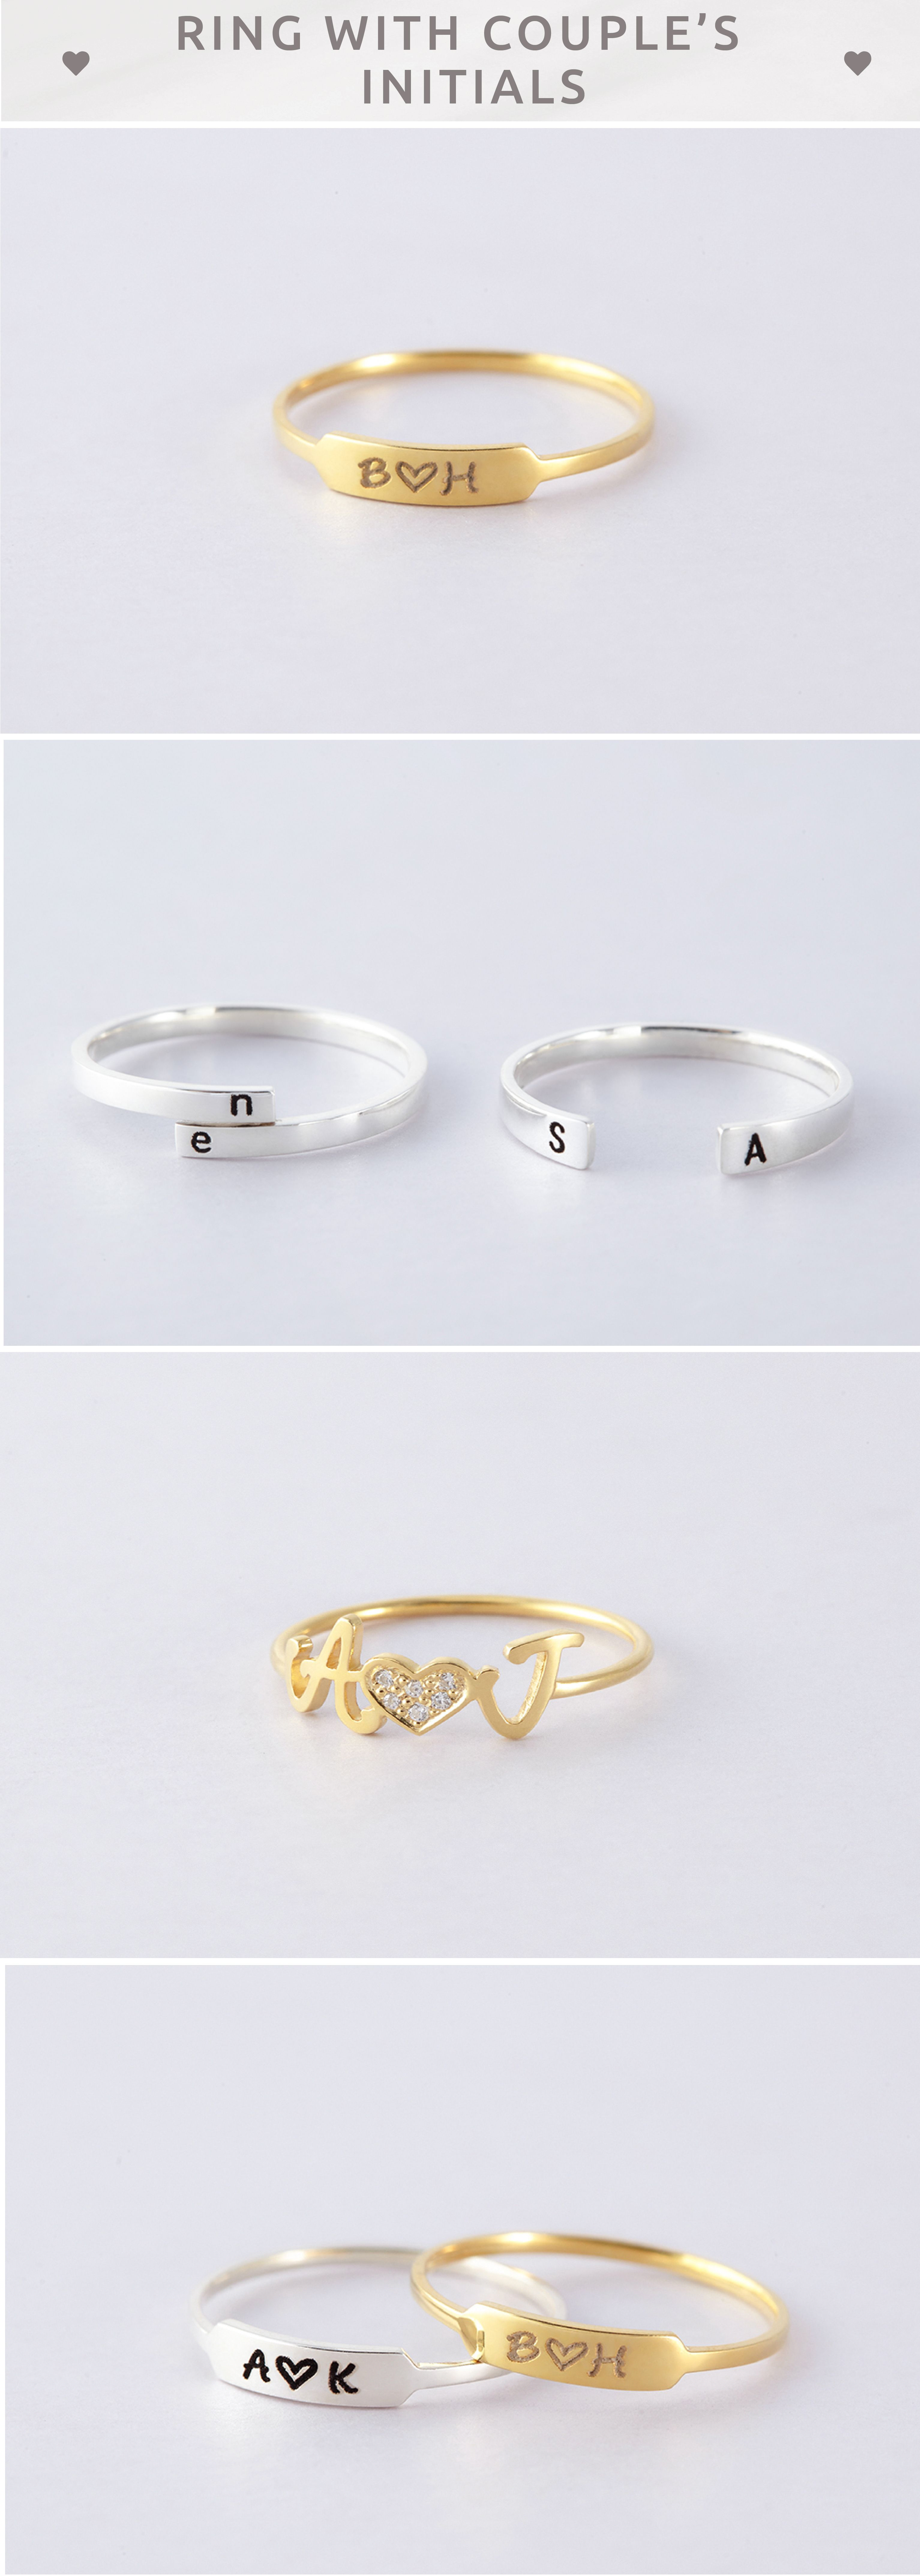 Couples Initial Ring Custom Silver Couples Ring